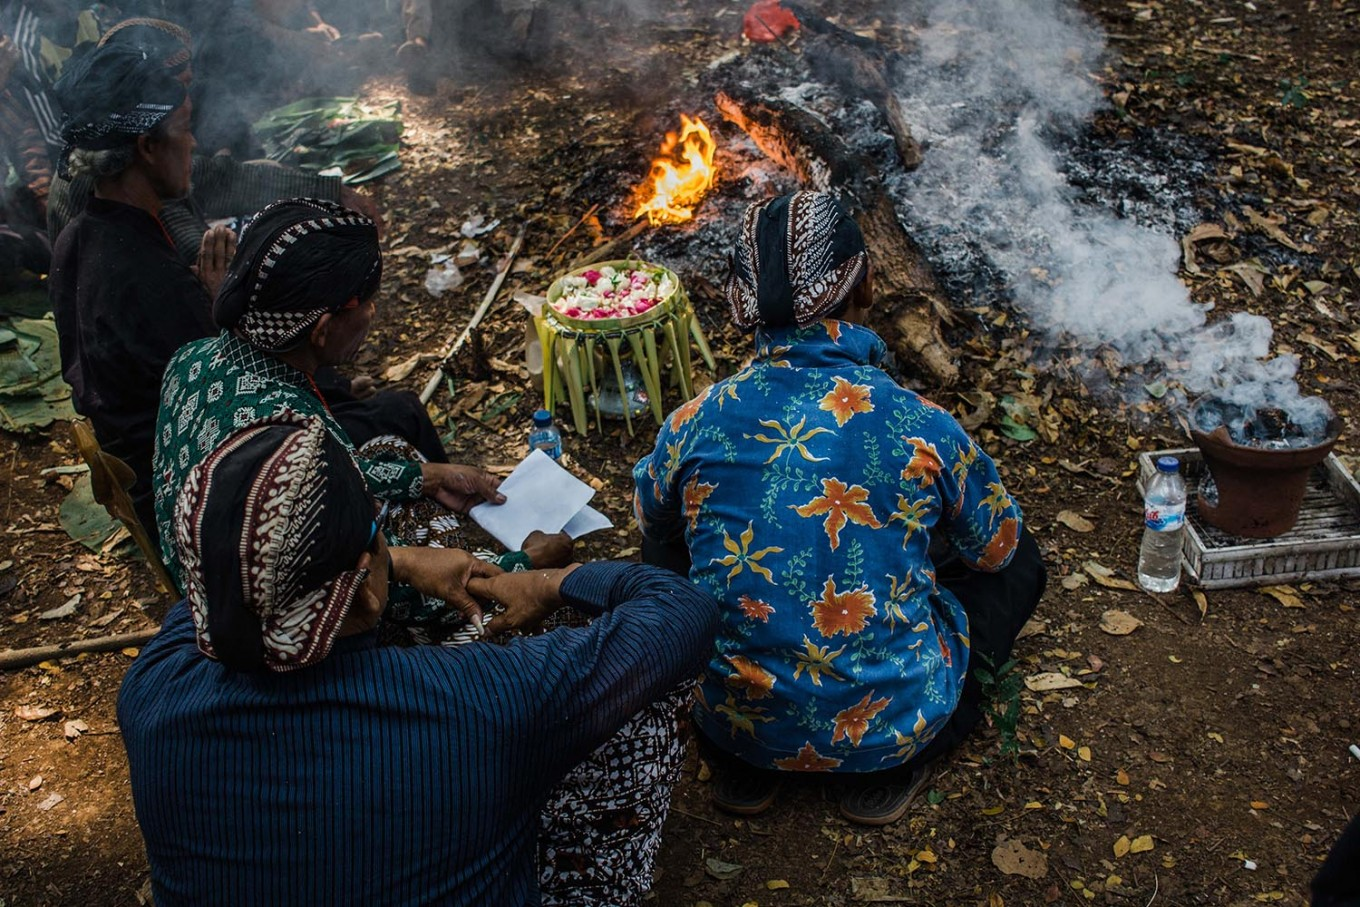 Elders of the village pray to God and their ancestors to express gratitude for a prosperous harvest. JP/Anggertimur Lanang Tinarbuko